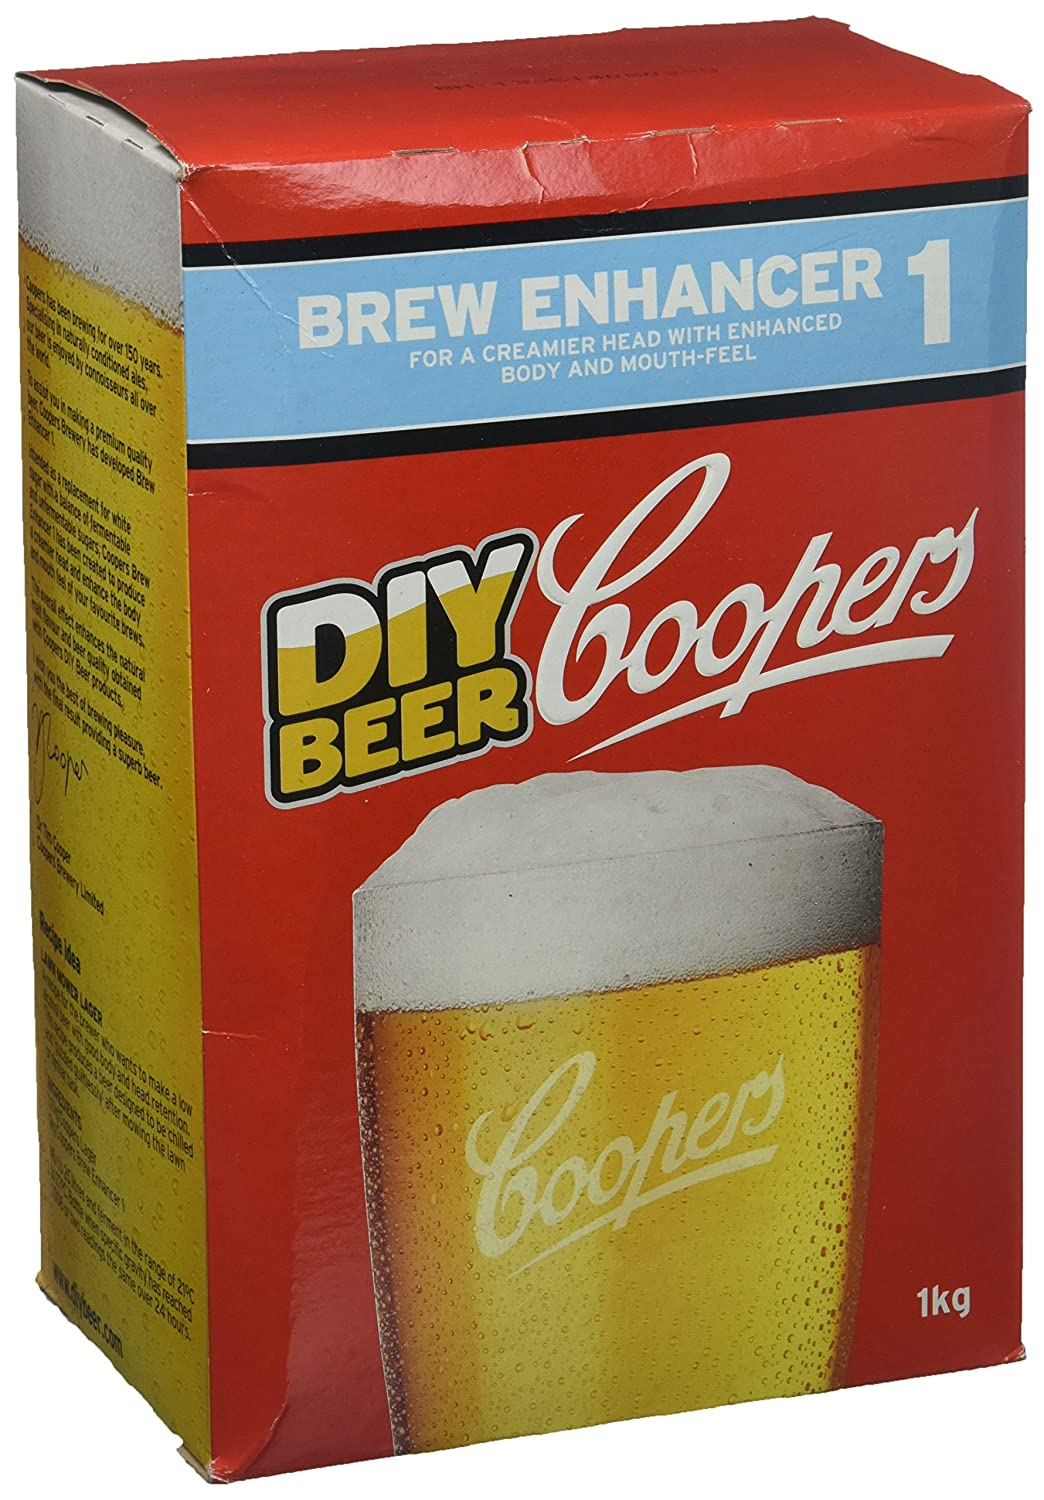 Coopers DIY Brew Enhancer 1 Home Brewing Additive Coopers DIY LLC dba Mr Beer 645